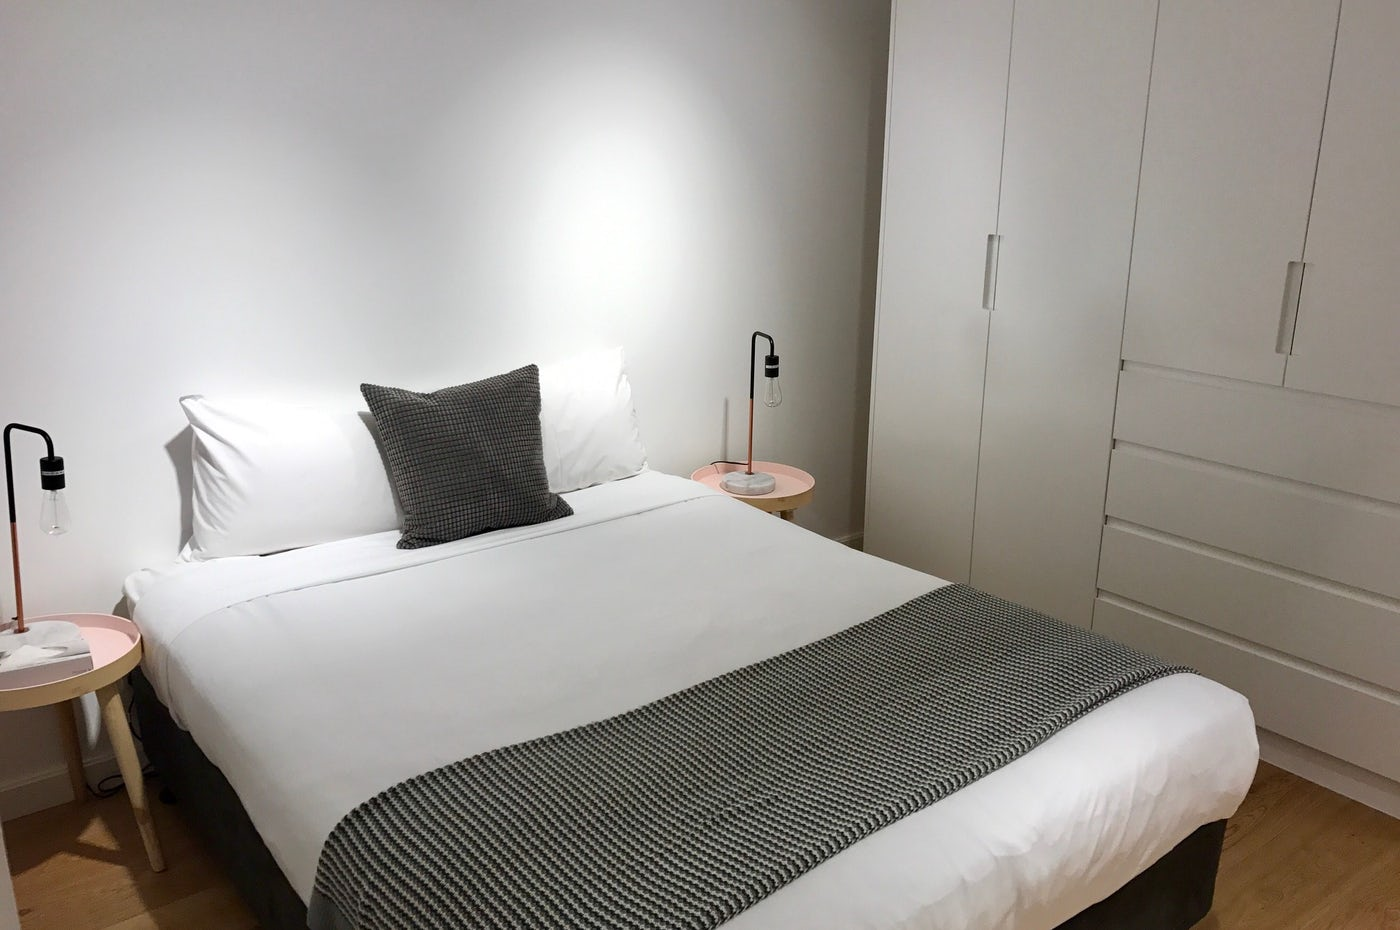 Vulcan Hotel Boutique Accommodation Studio apartment room